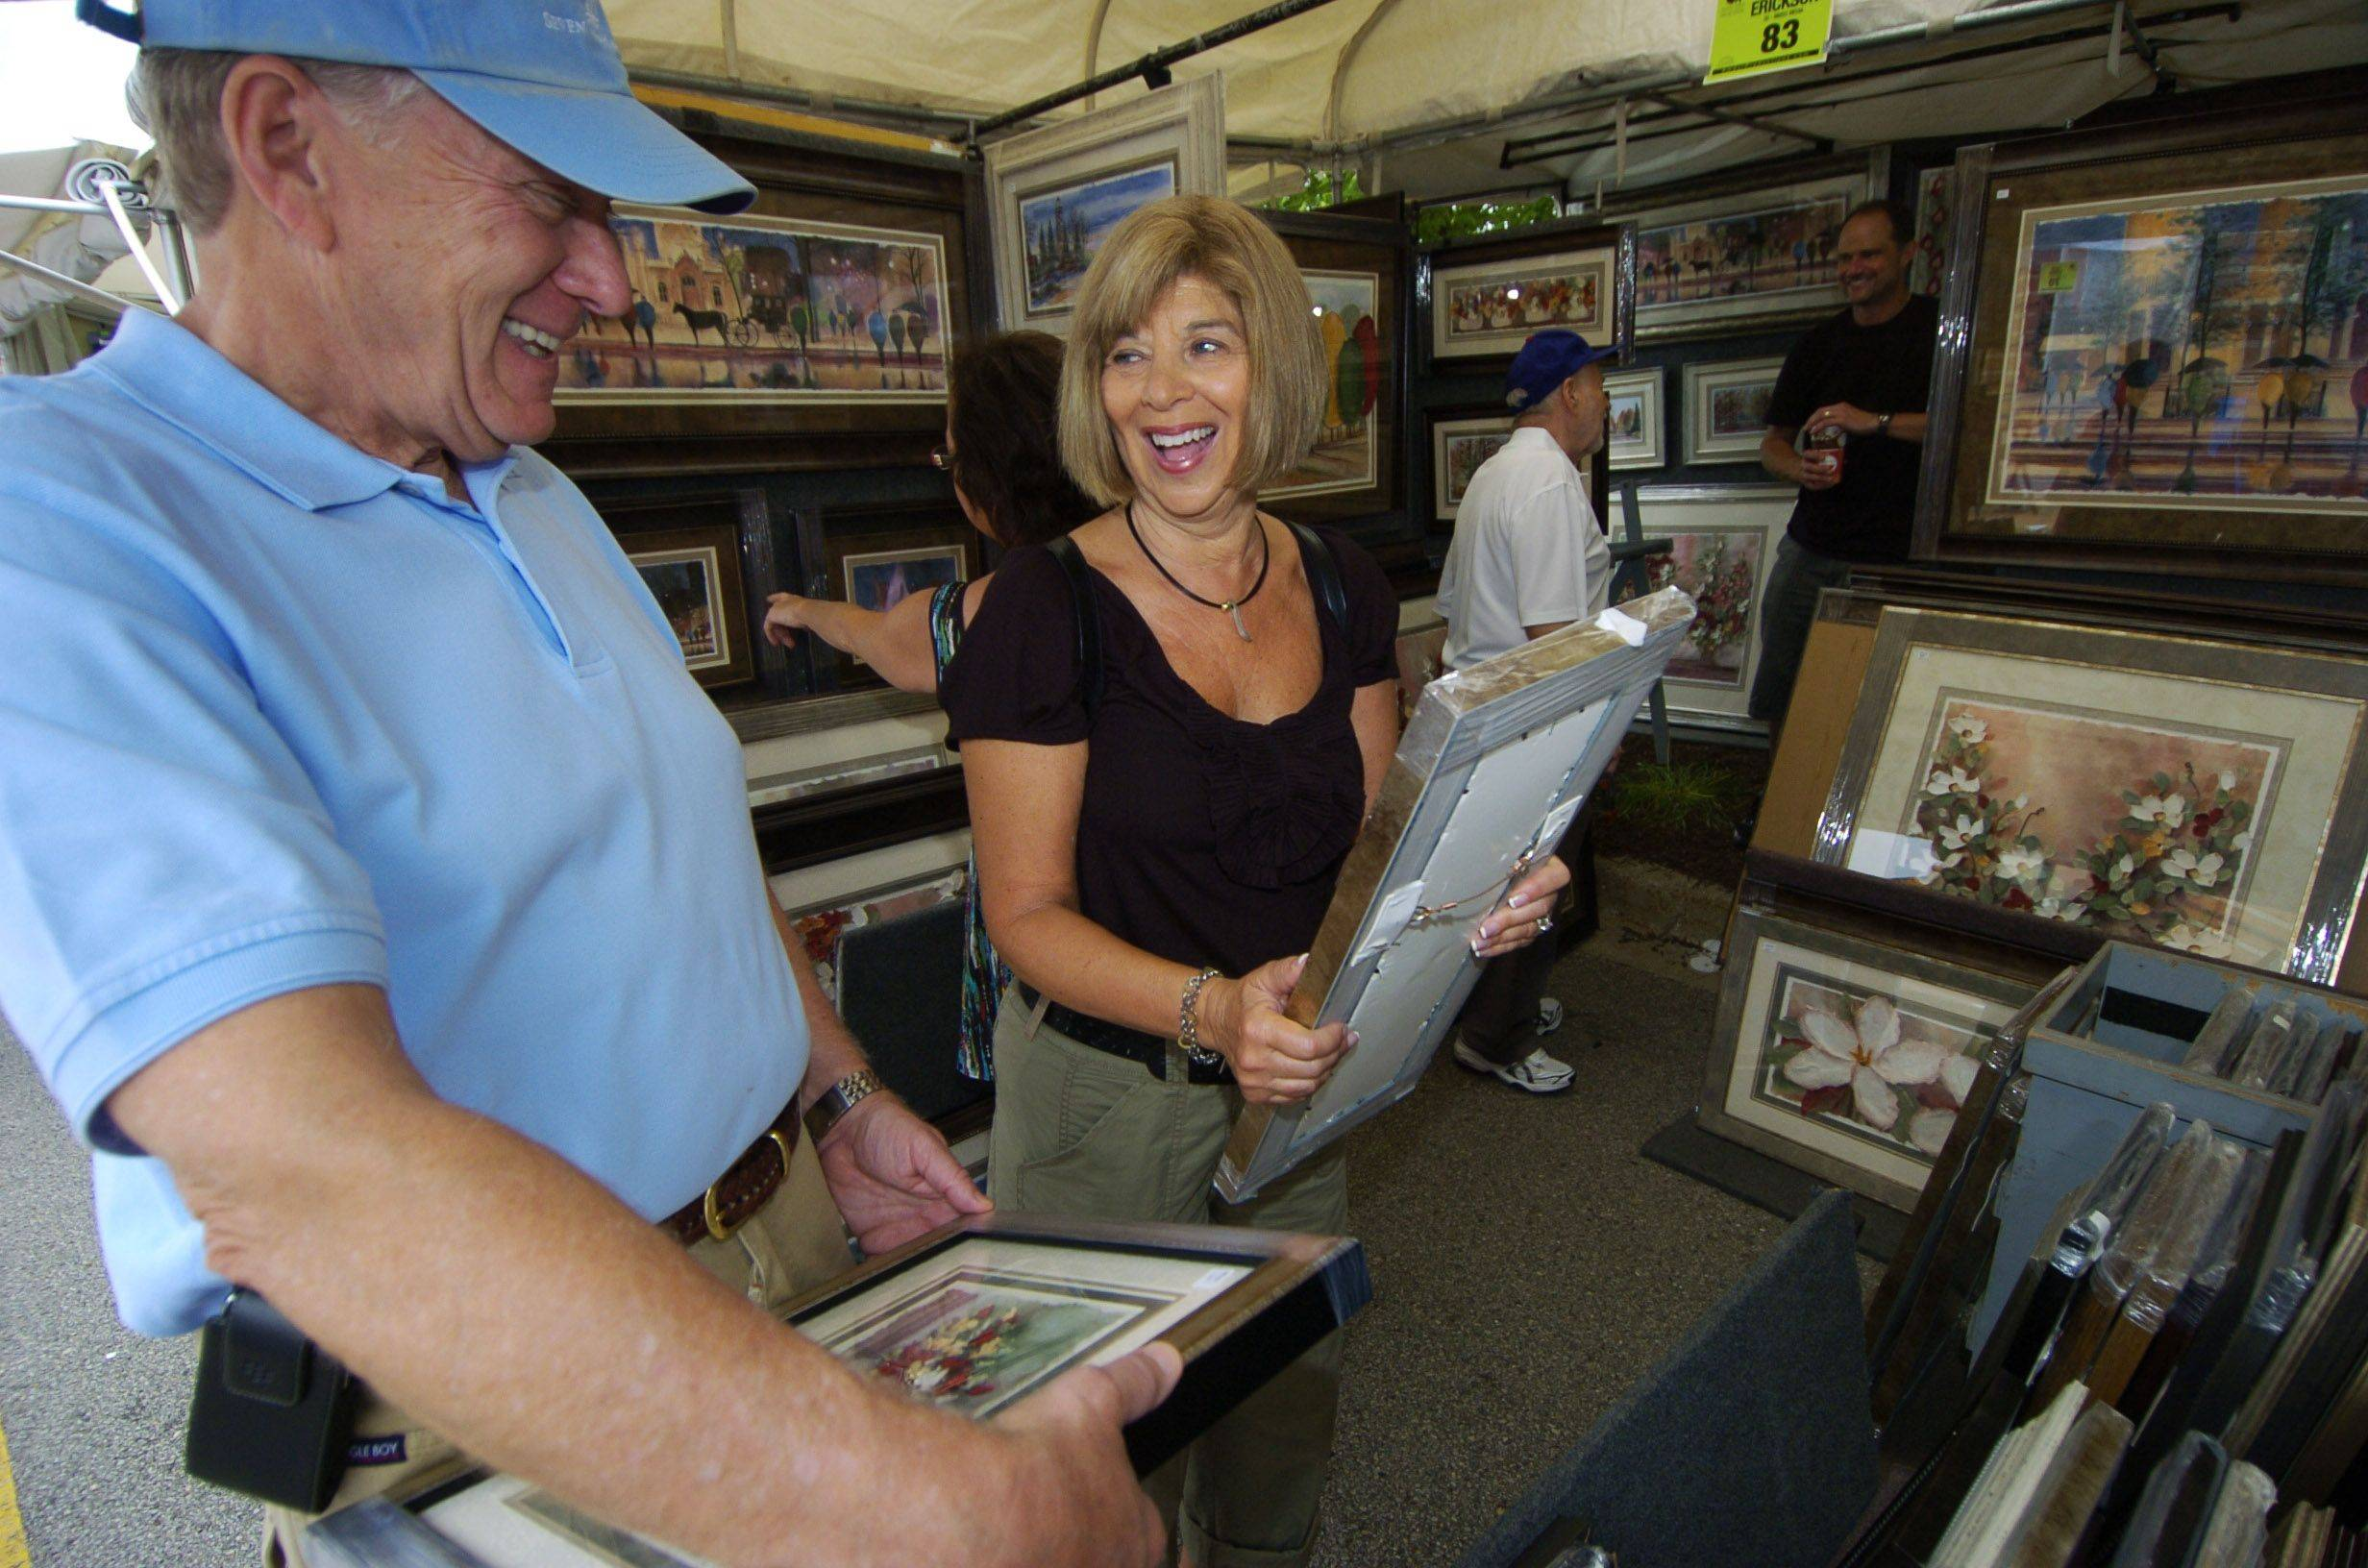 Herb and Bonnie Horn of Glenview view prints during the Buffalo Grove Invitational Arts Festival Saturday.